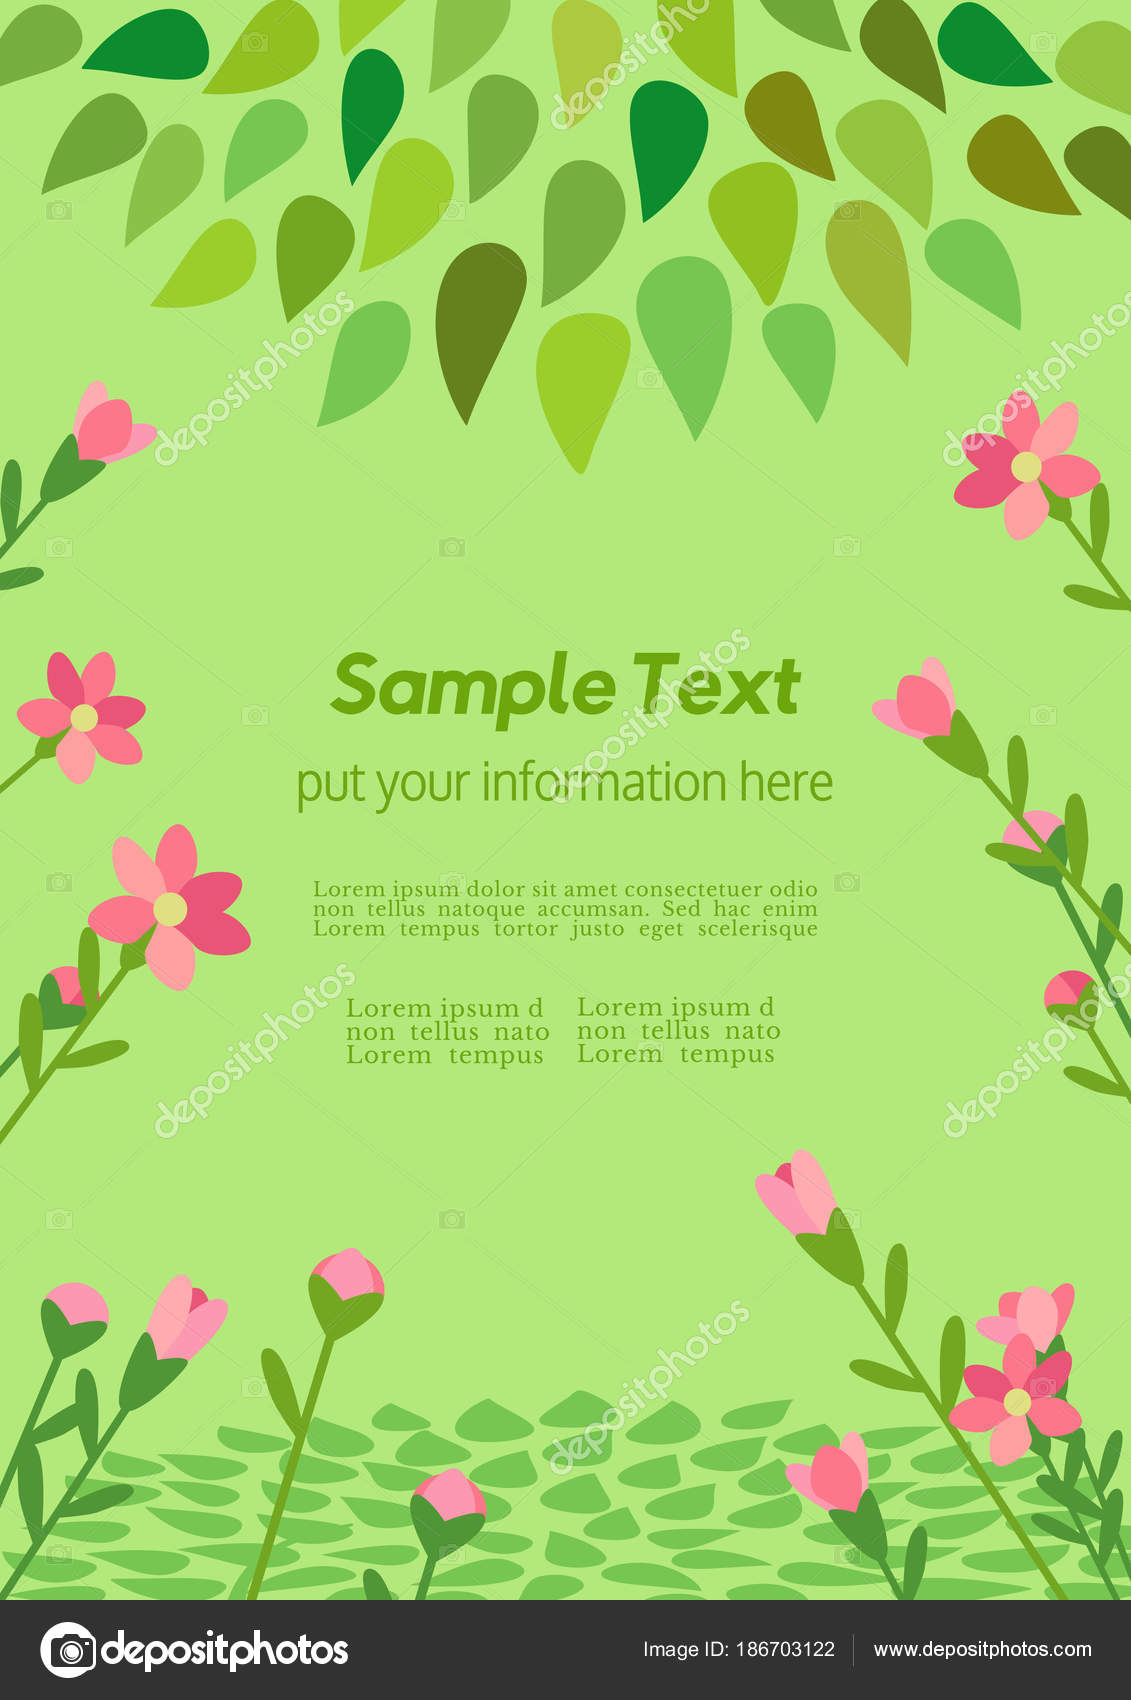 Template Spring flyer — Stock Vector © 64samcorp.gmail.com #186703122